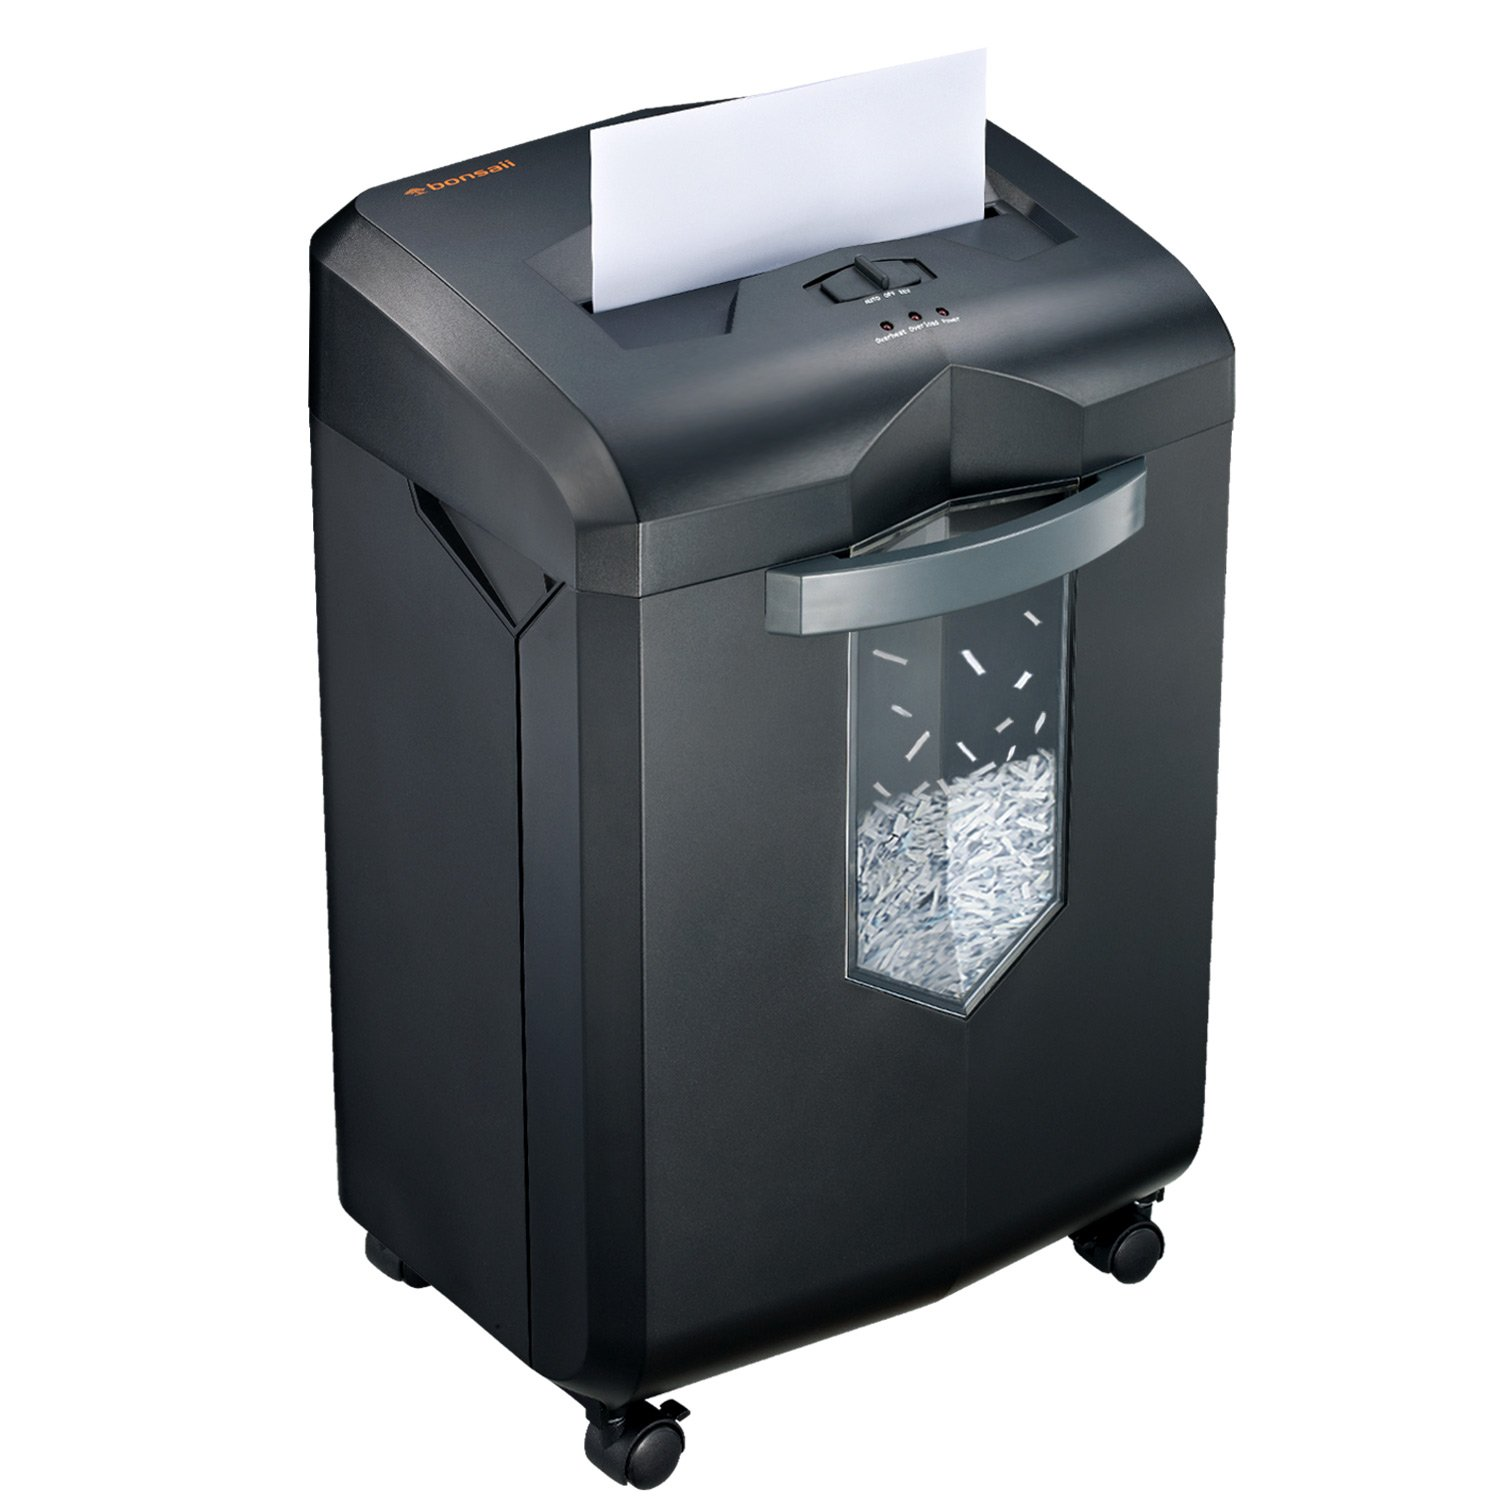 Bonsaii EverShred C149-C 18-Sheet Heavy Duty Cross-Cut Paper/CD/Credit Card Shredder